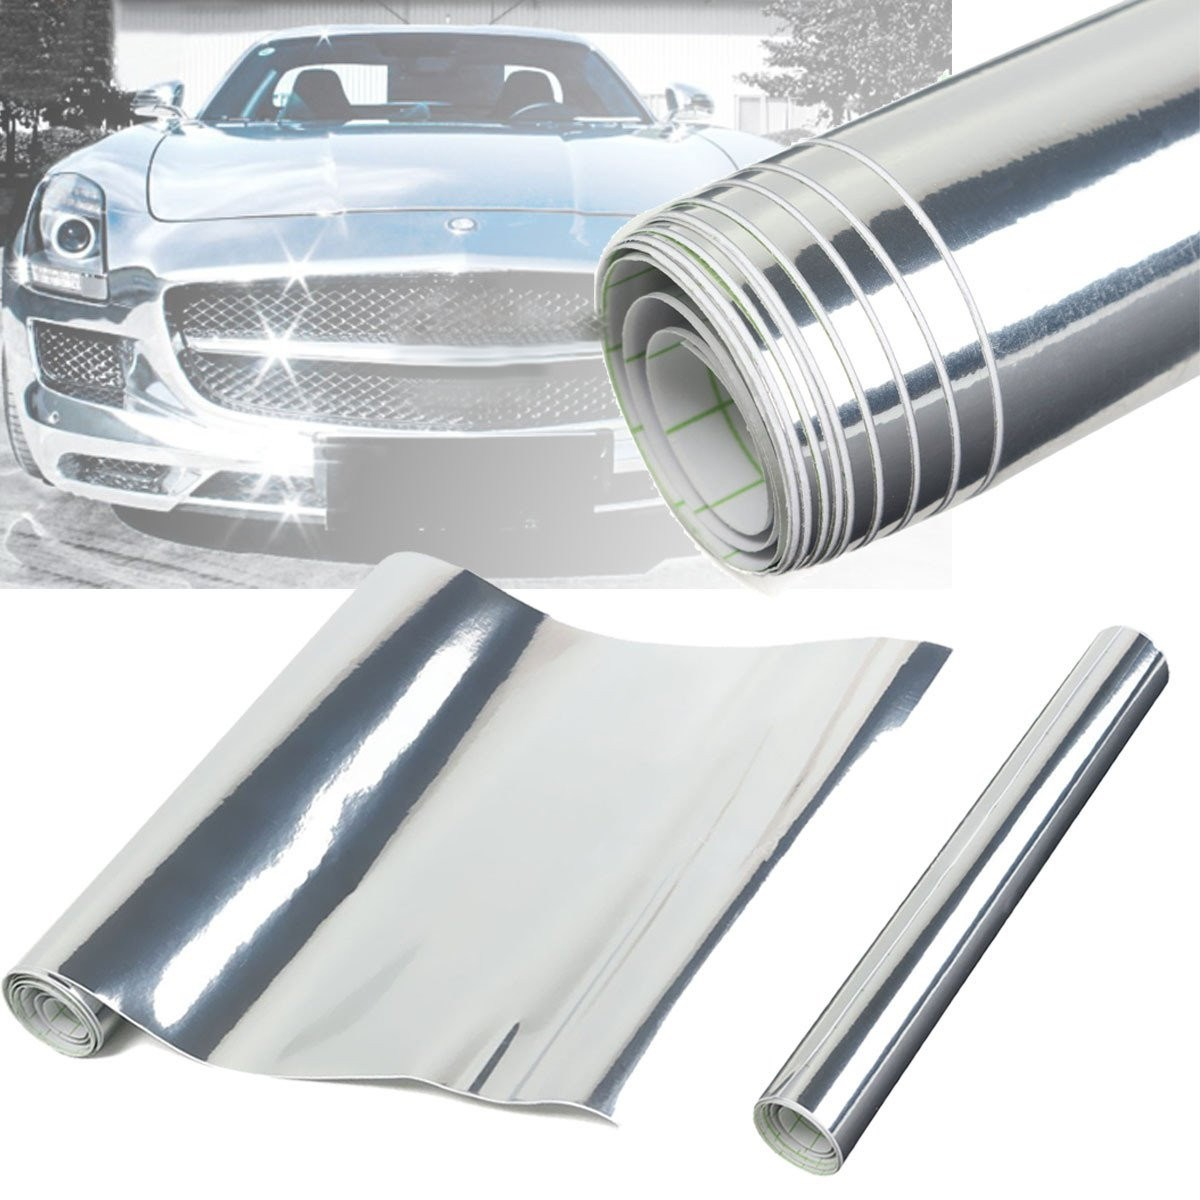 Chrome Silver Mirror Vinyl DIY Sheet Wrap Roll Decal Film Car Sticker Gloss Decal Car Styling 30*150cm mirror silver chrome vespa open face